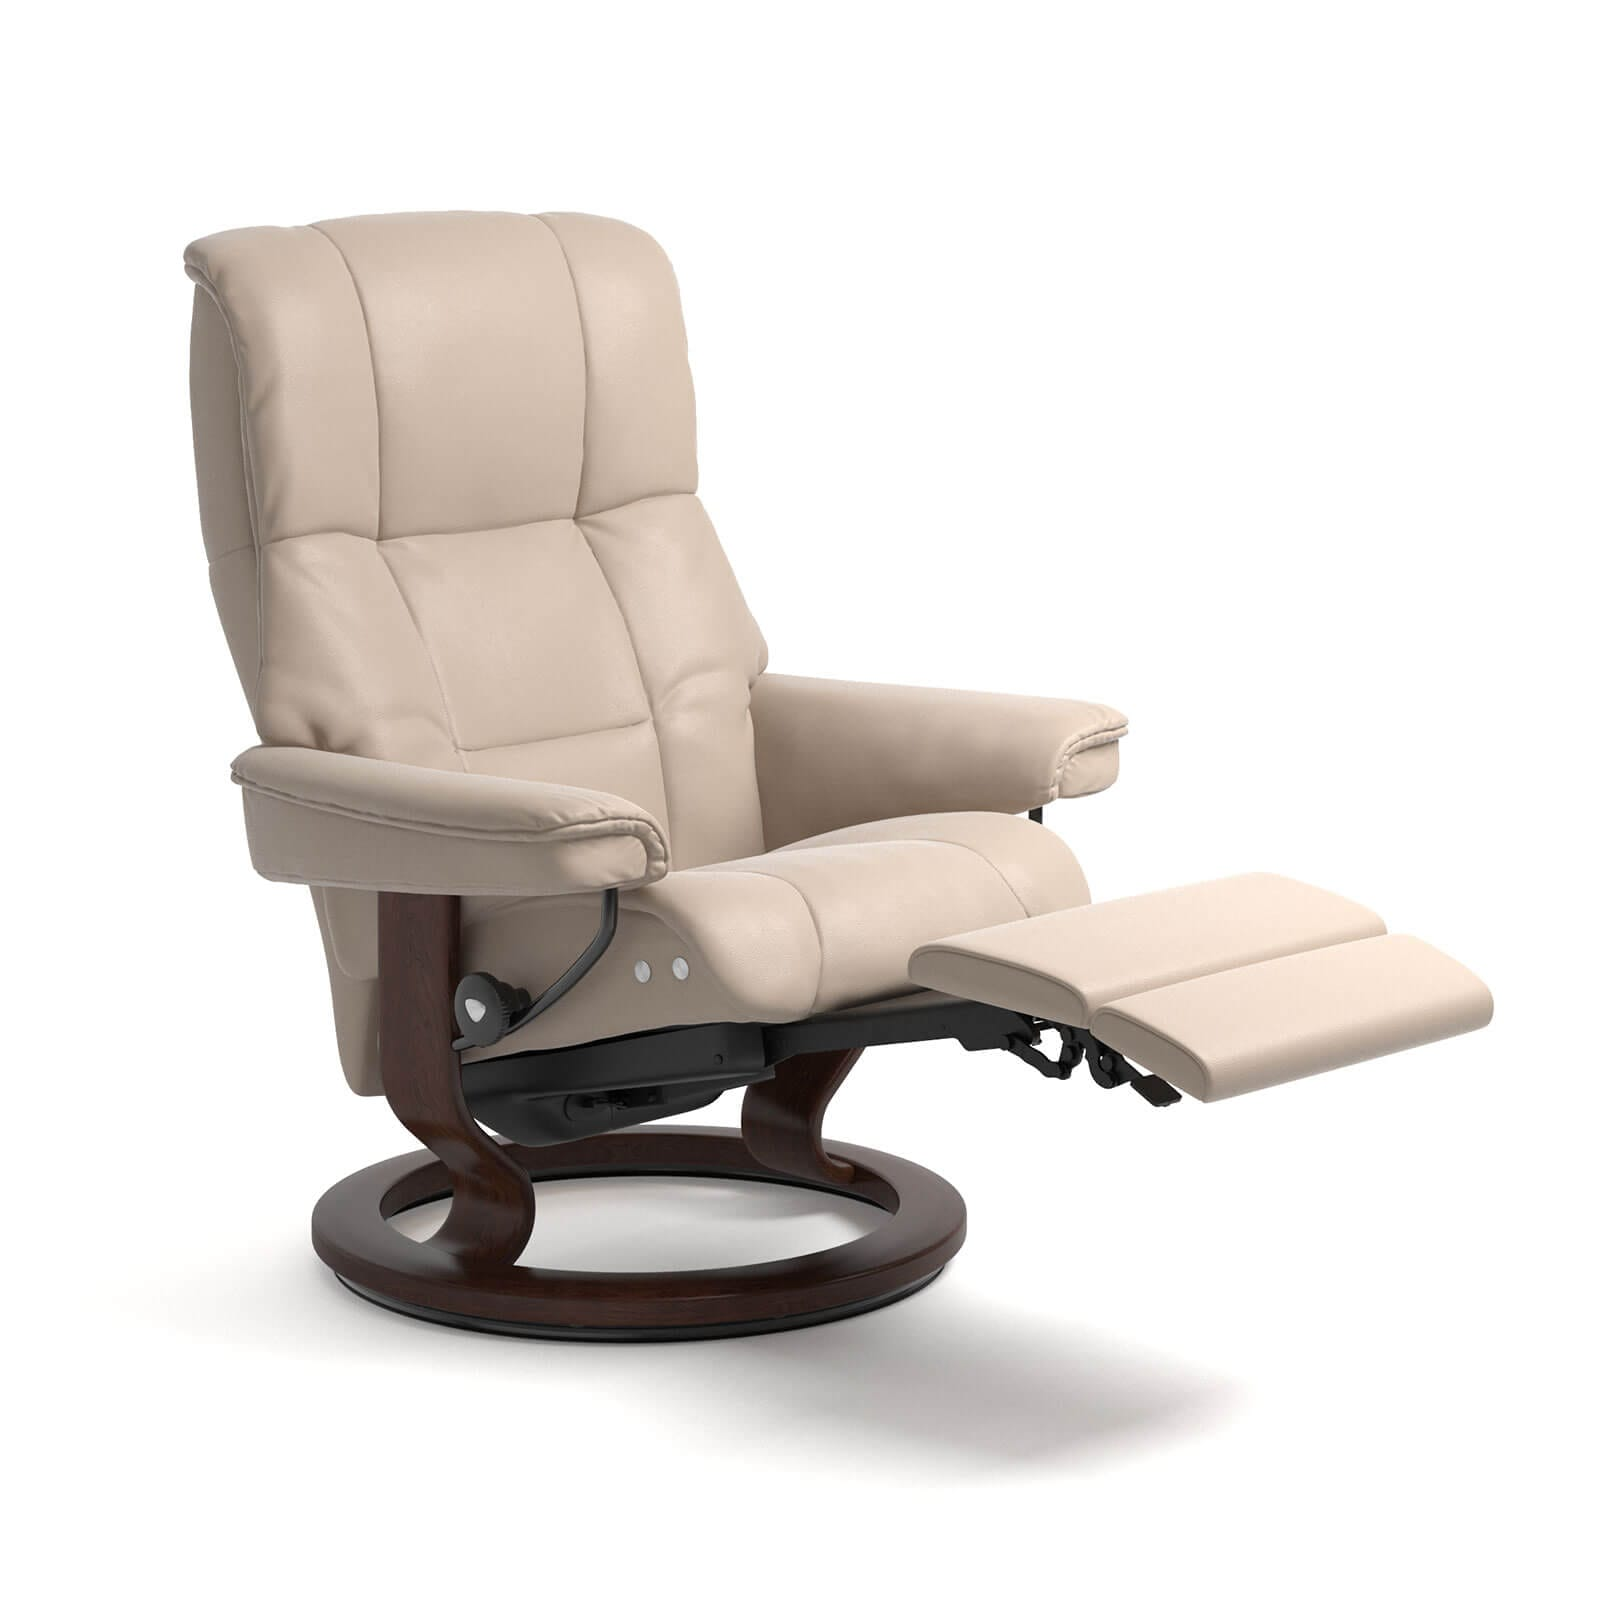 Stressless Sessel Mayfair Power Leg Ehem Legcomfort Cori Vanilla Stressless